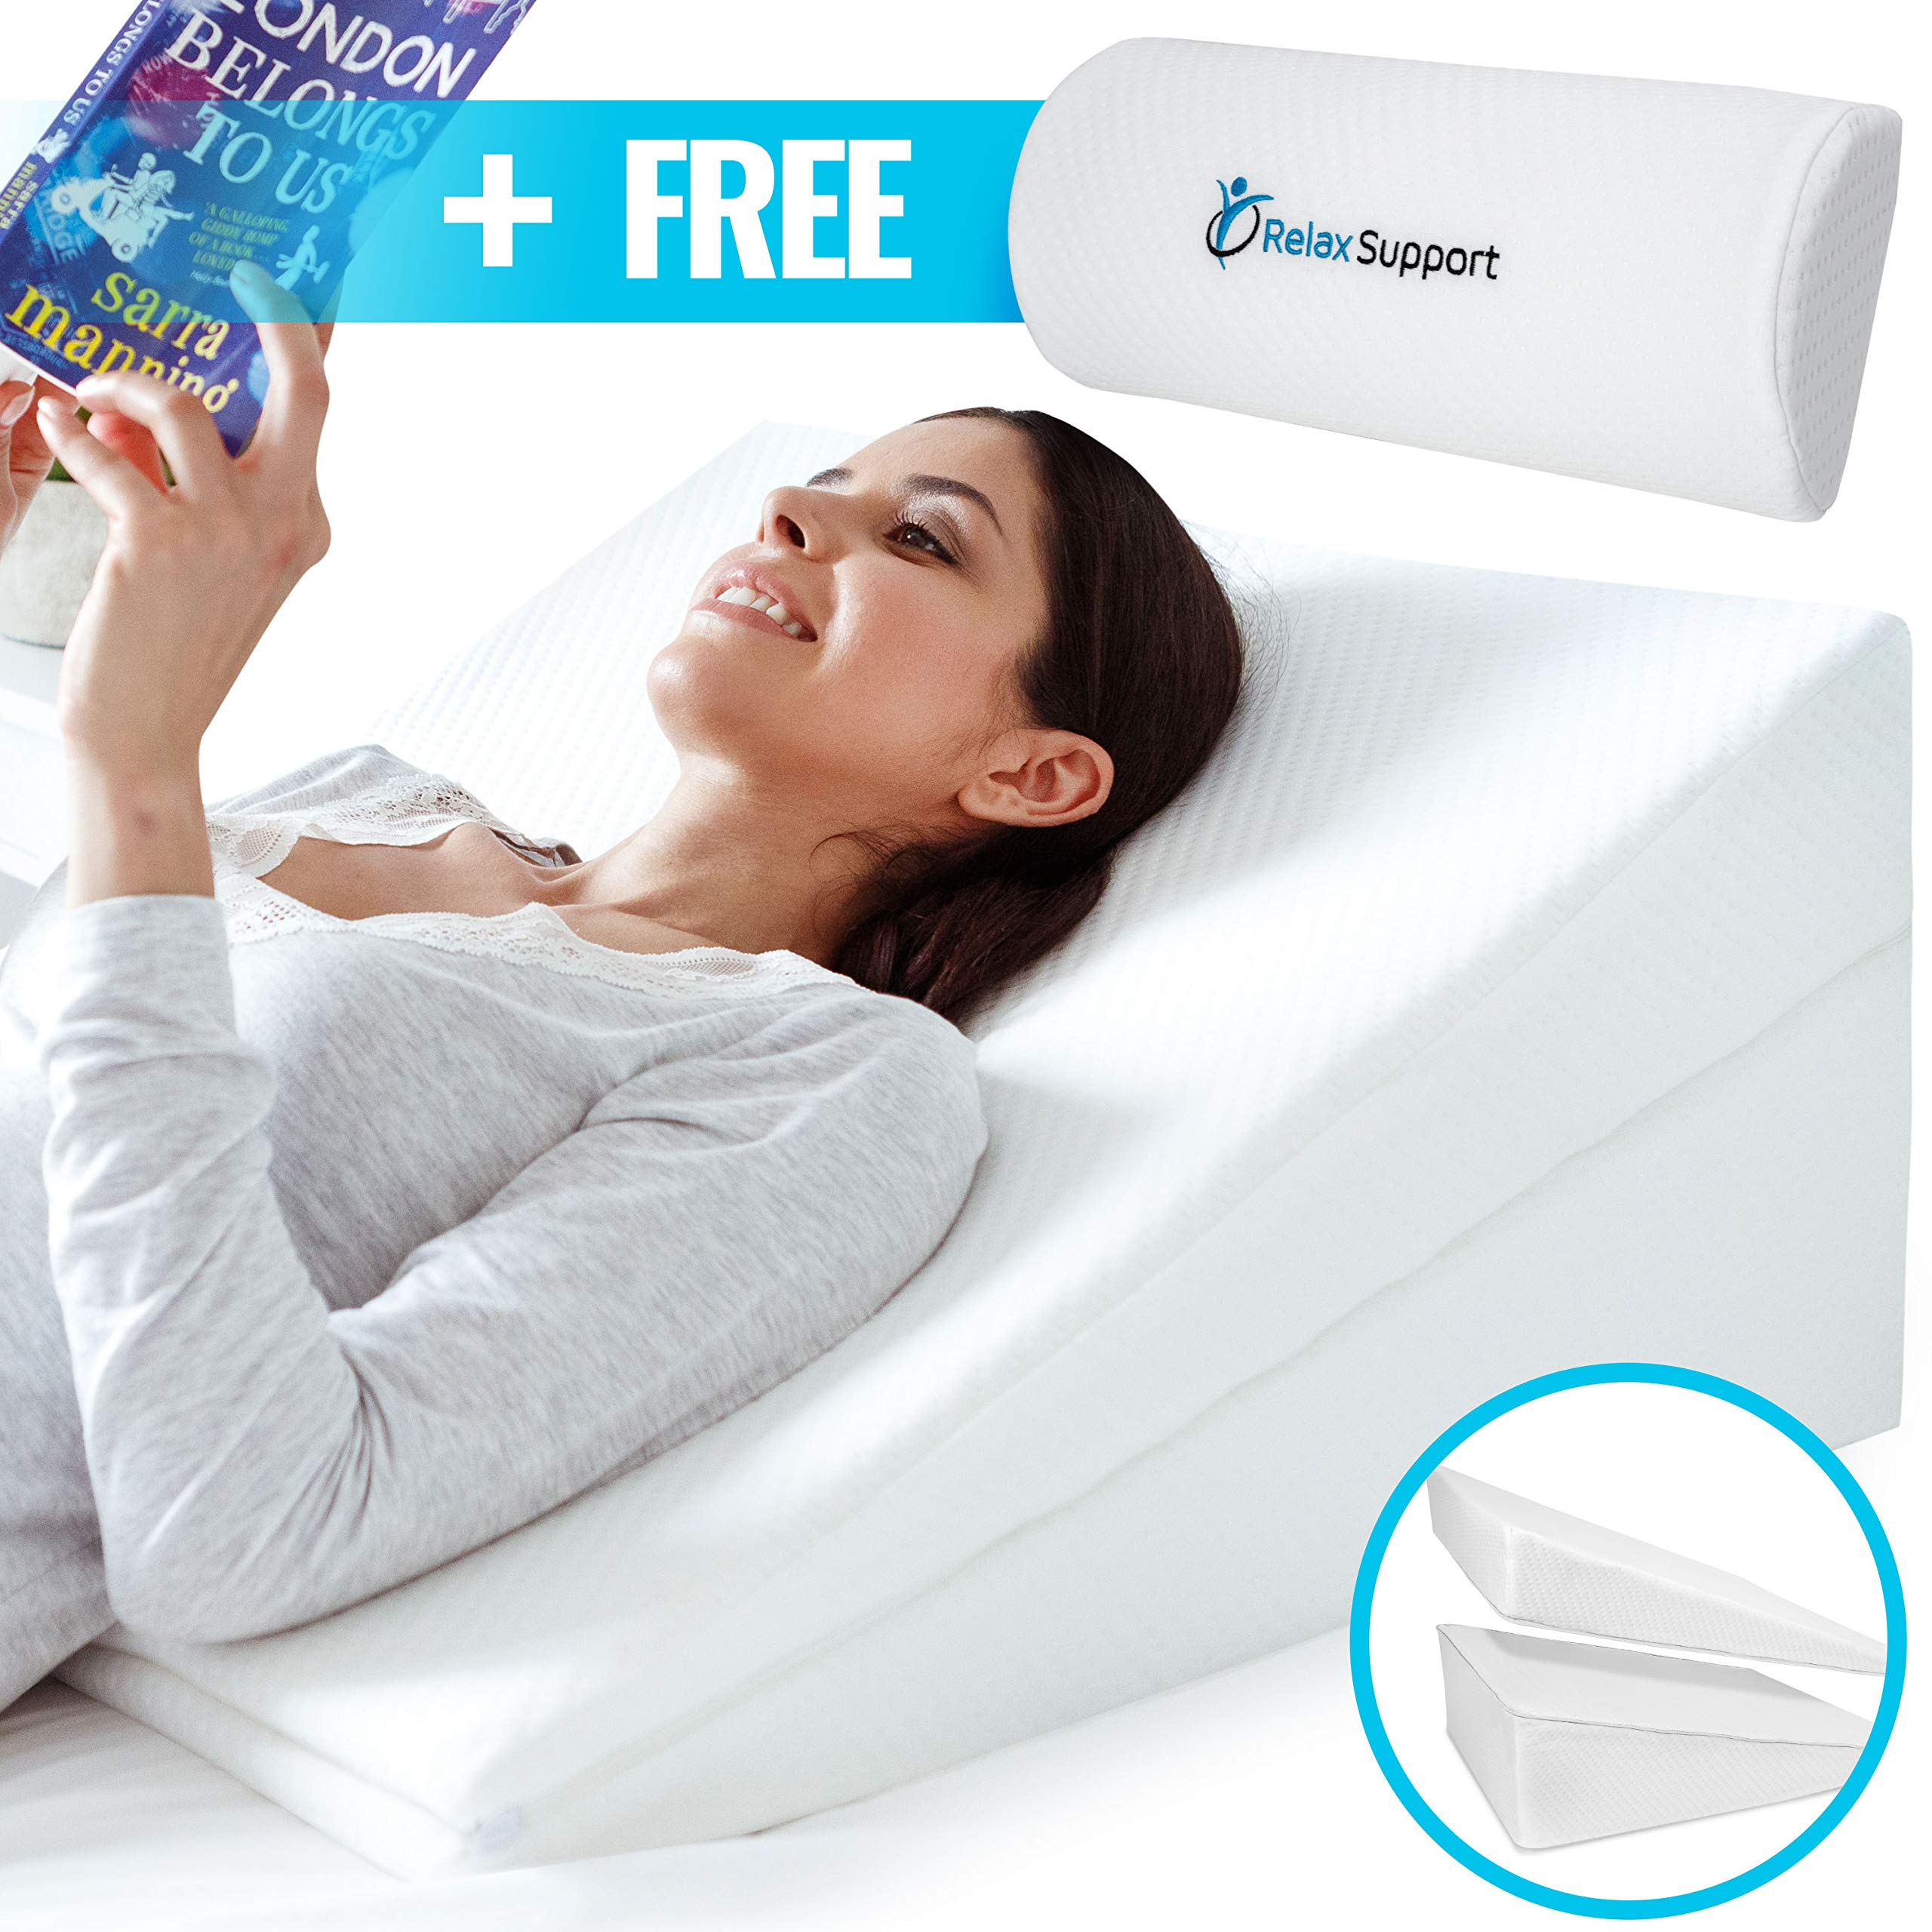 Memory Foam Back Support - Wedge Pillow RS6 Relax Support - Neck and Lumbar Pain Relief Only Wedge Pillow w/Strategic Elevation 3-in-1 Technology to Give You The Angle of Support You Need by RELAX SUPPORT